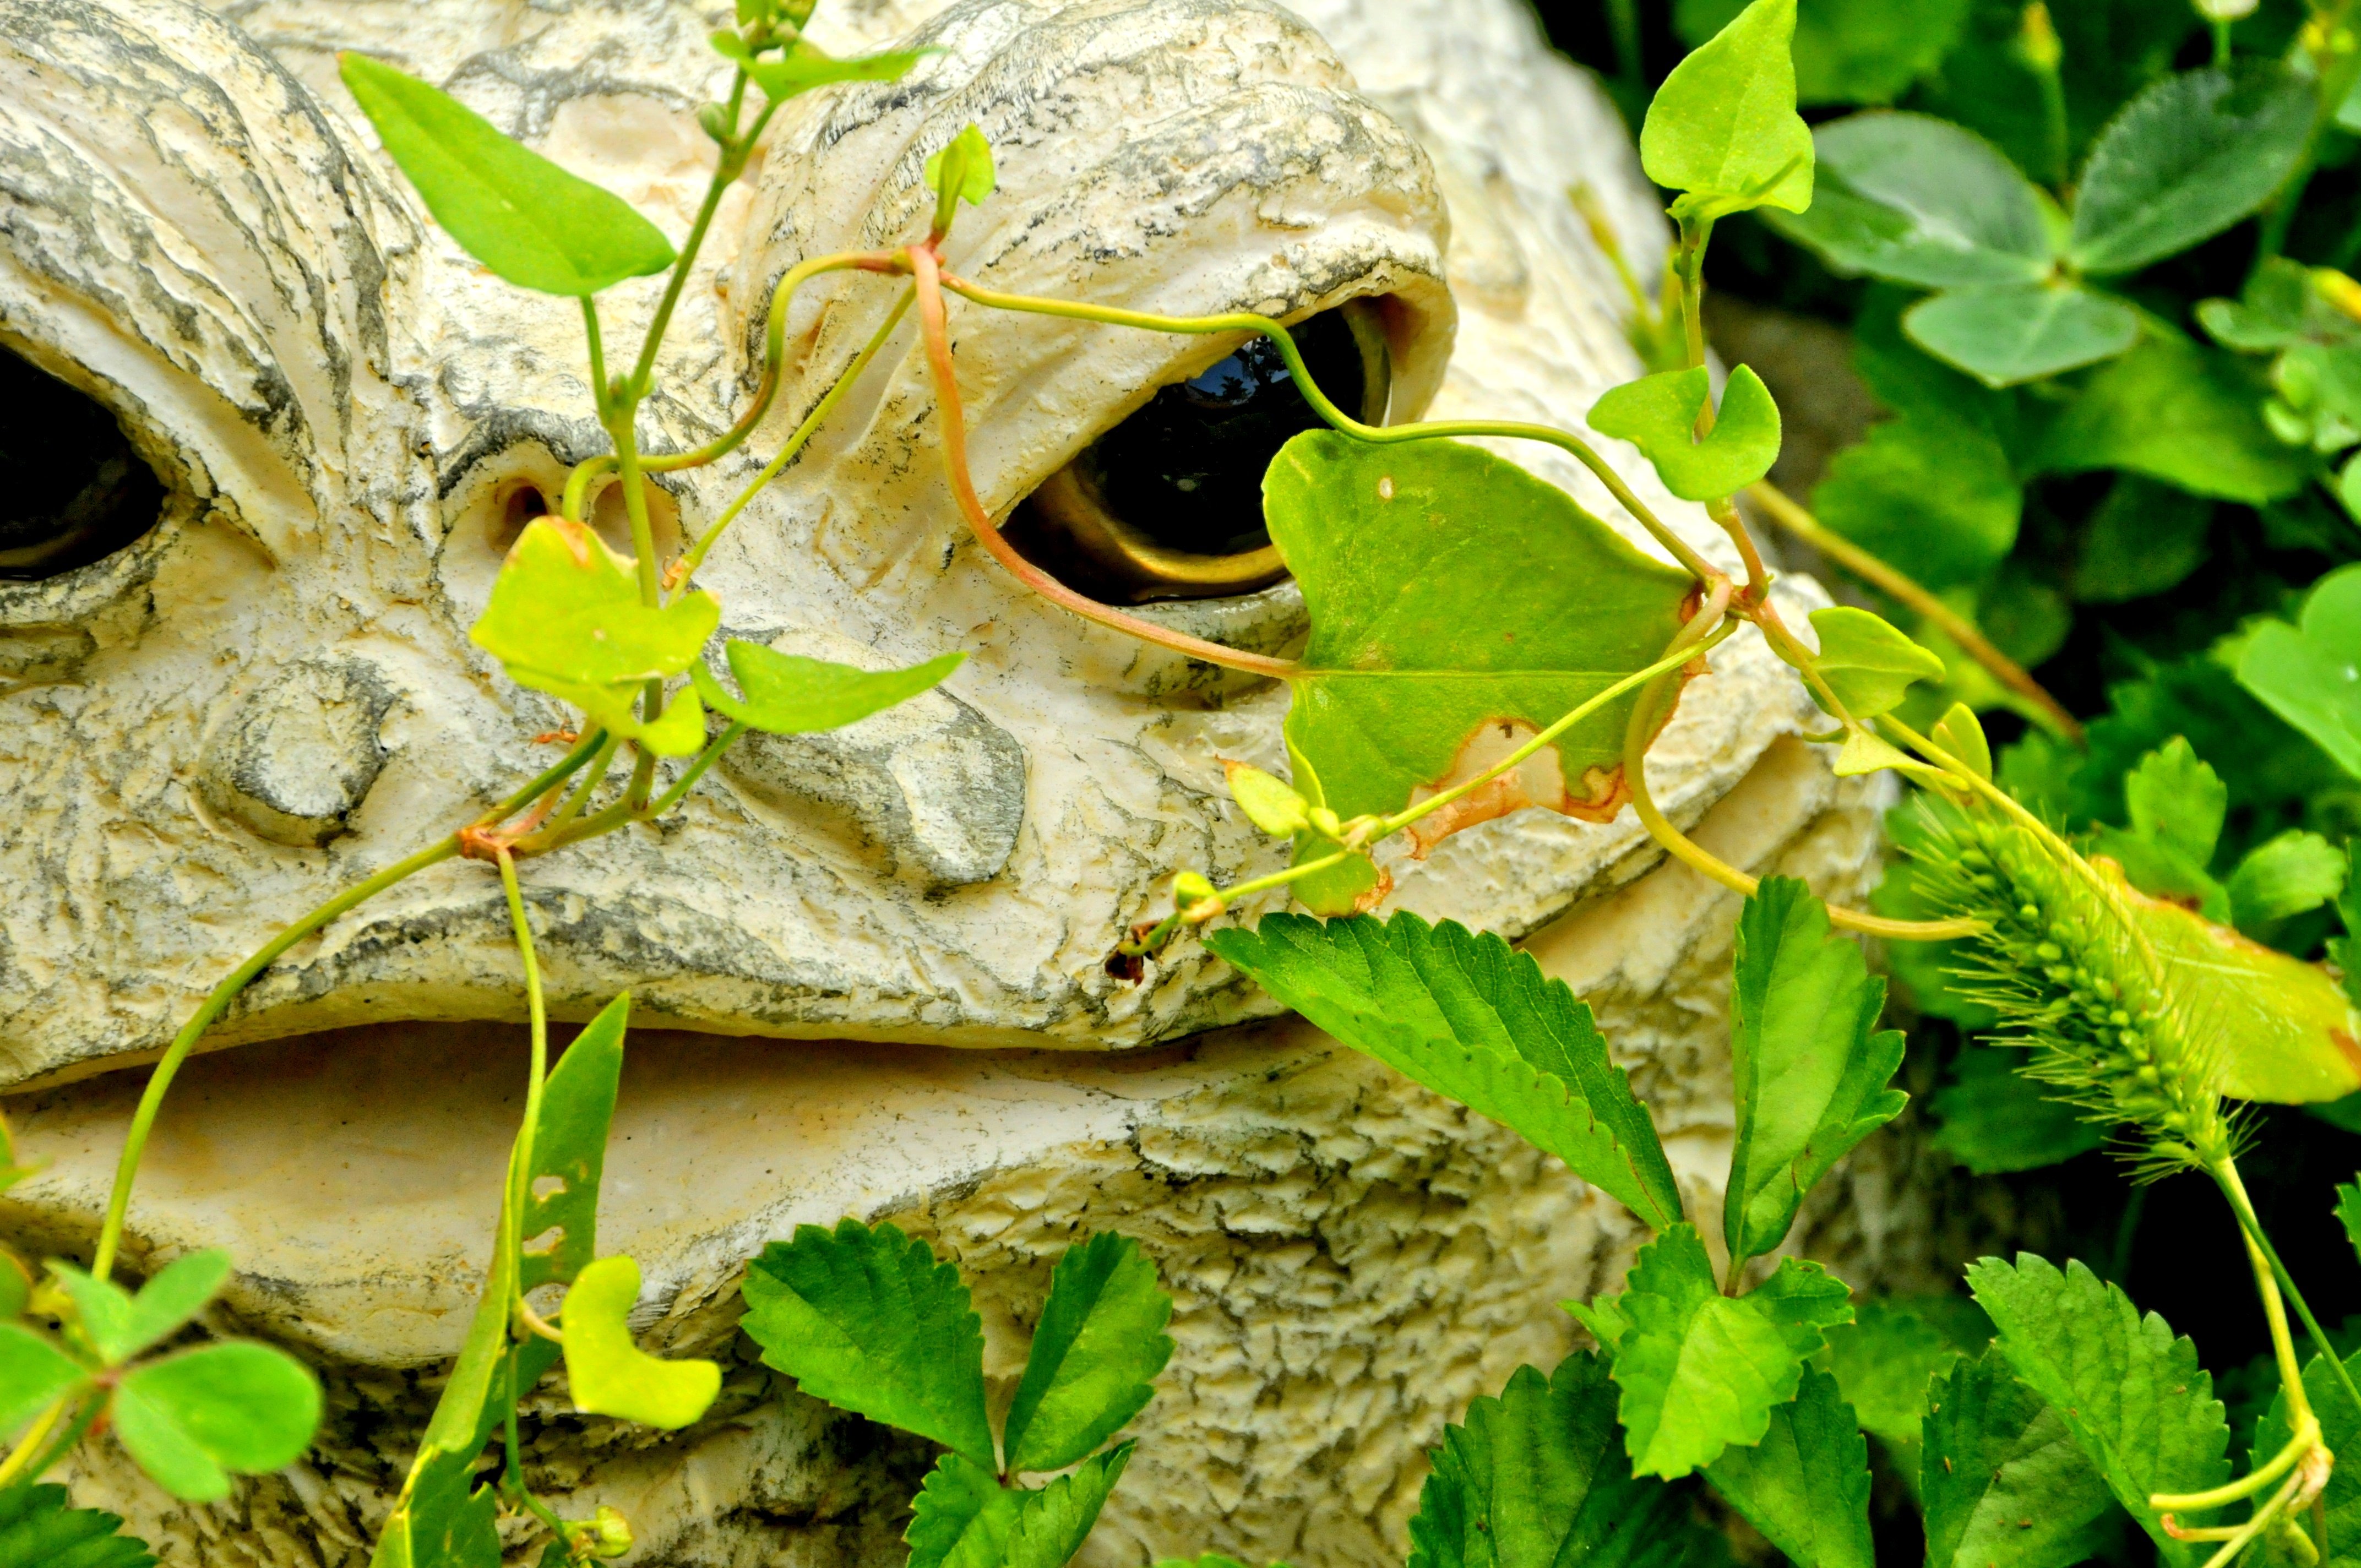 Frog in the Vines